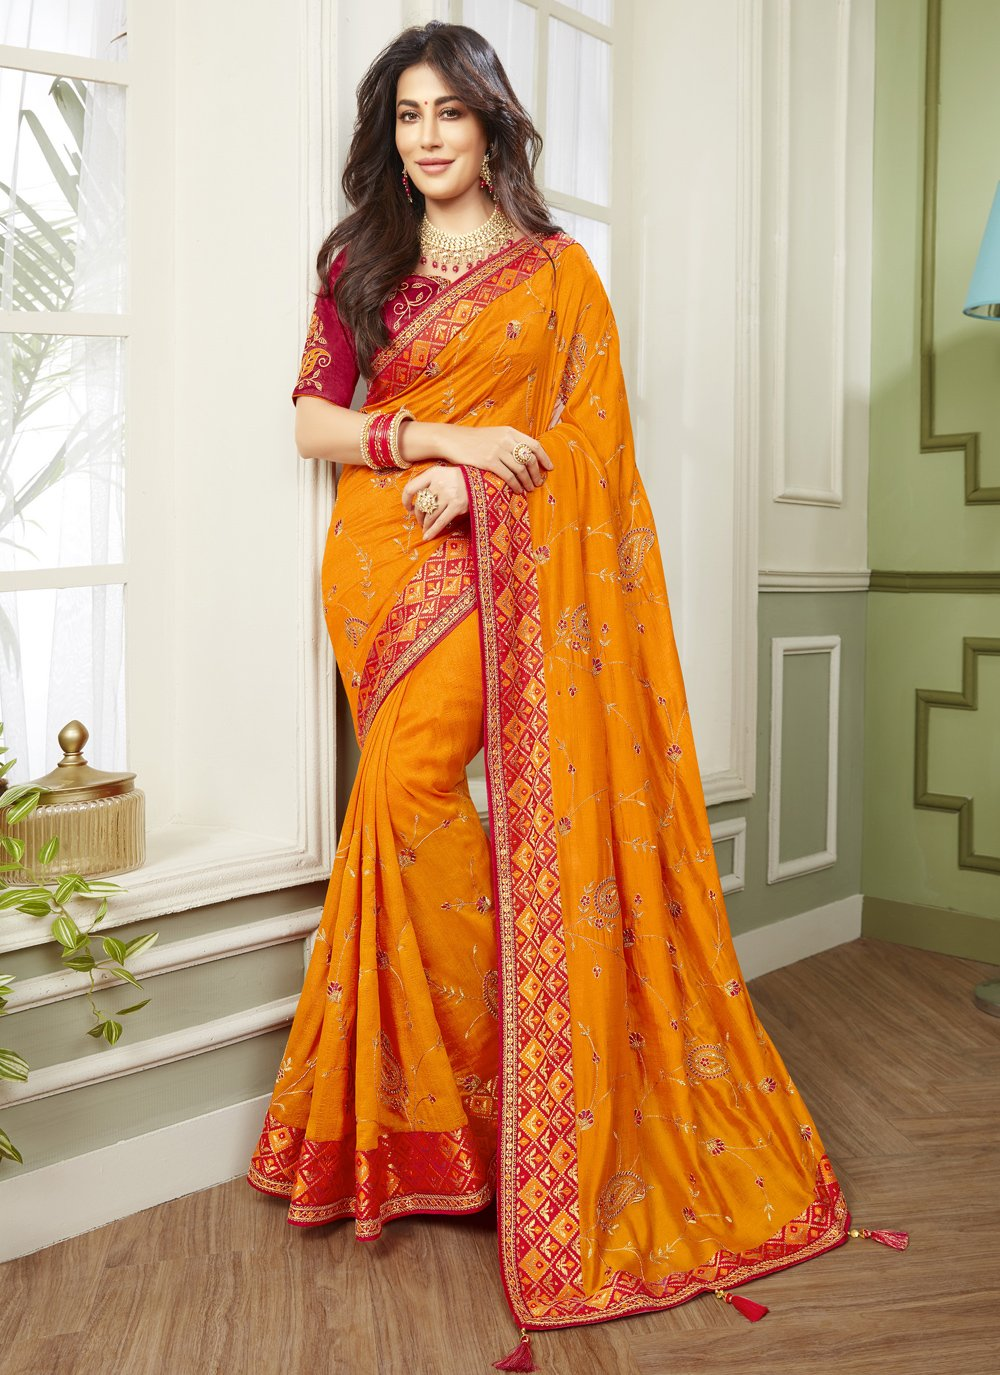 Chitrangada Singh Designer Traditional Saree For Mehndi